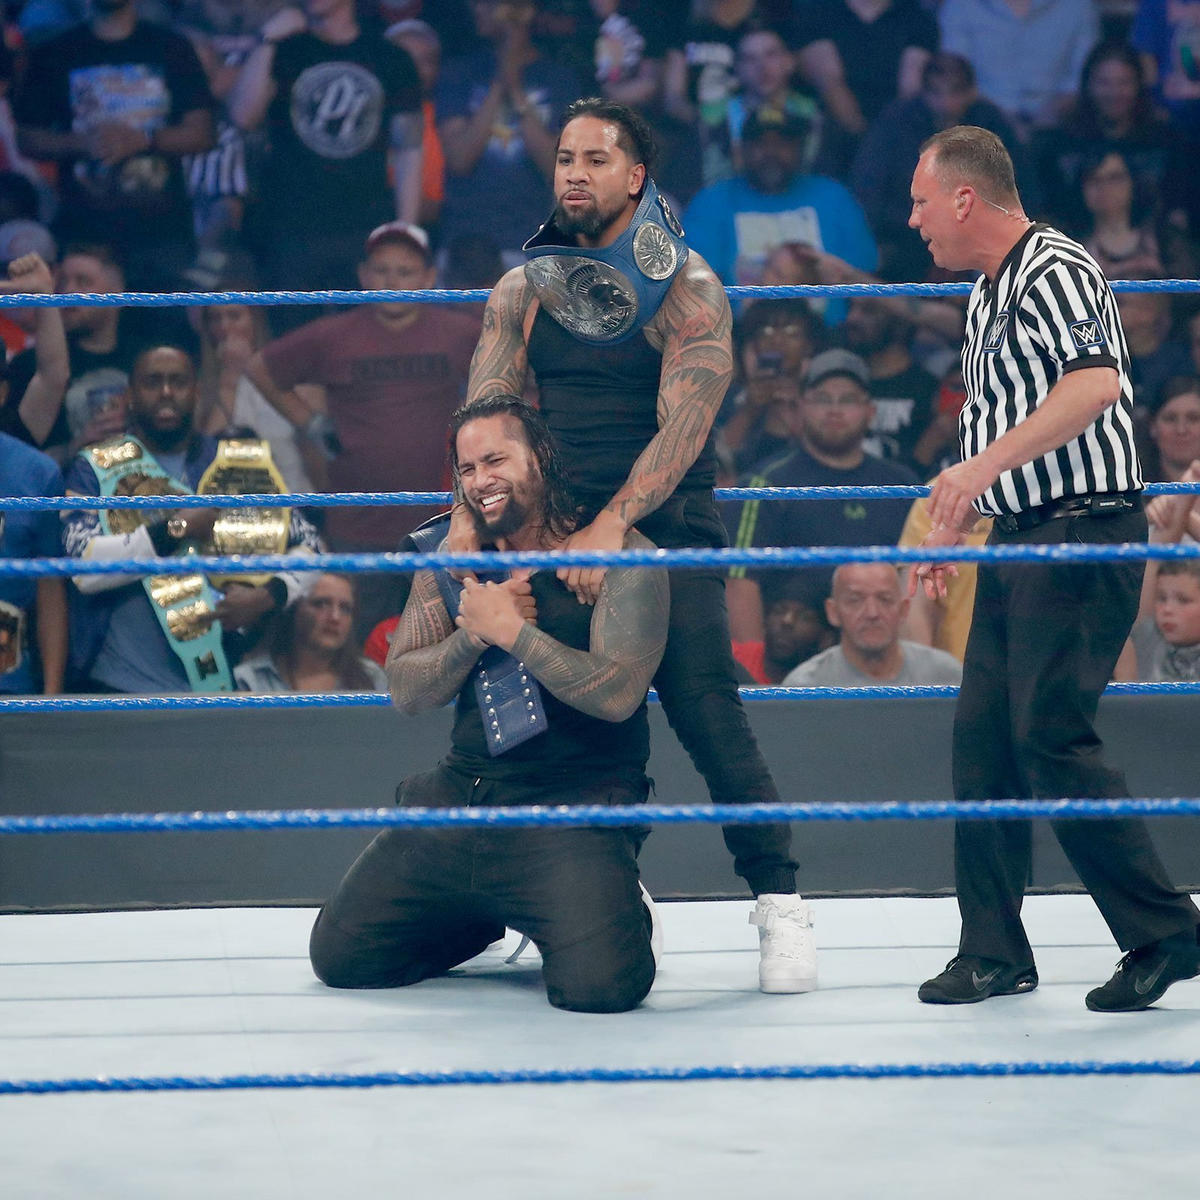 The Usos retain the SmackDown Tag Team Championship.